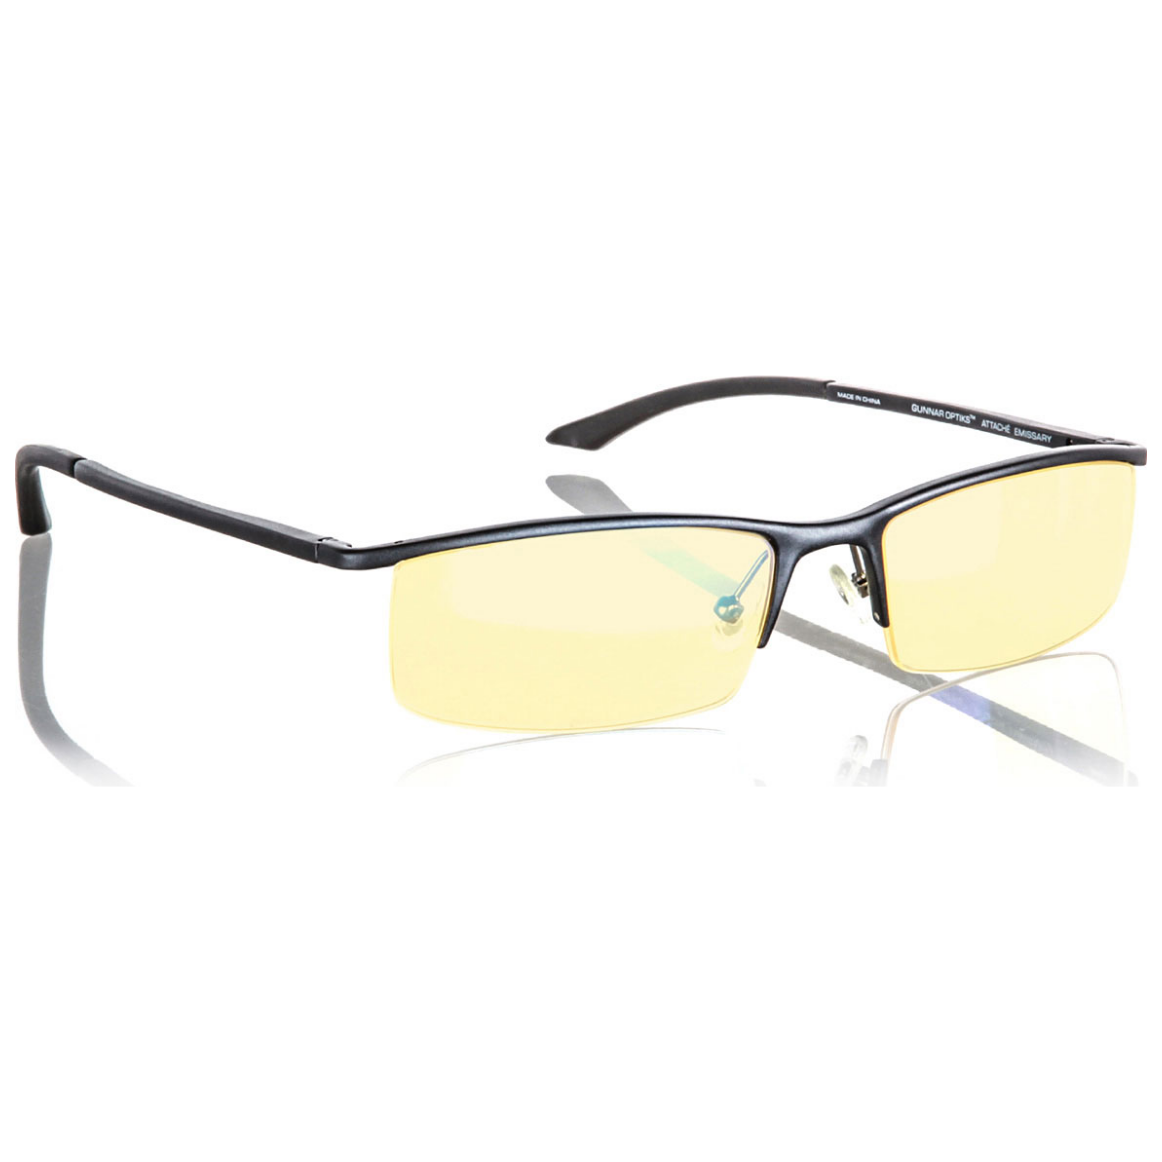 gunnar emissary mercury indoor digital eyewear gn